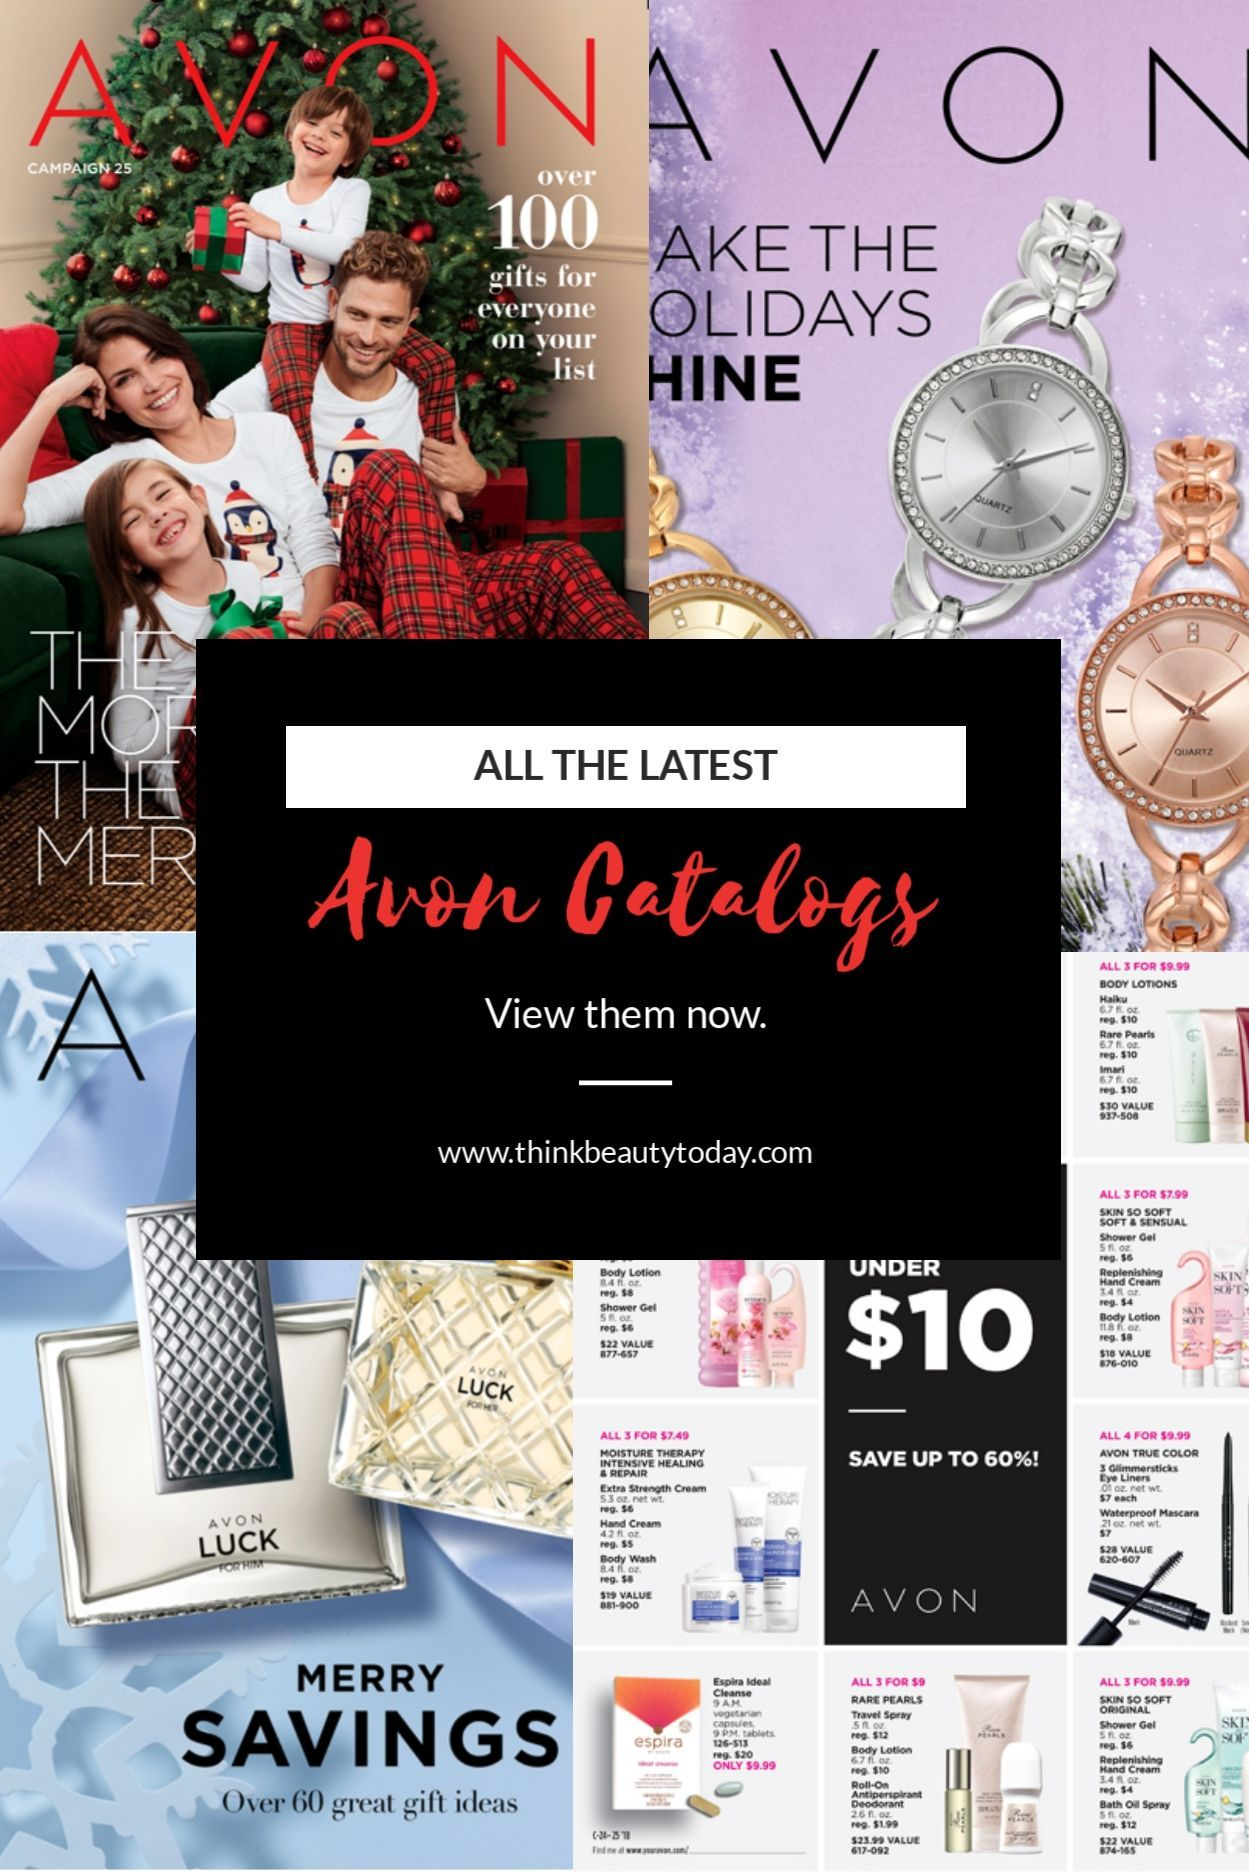 Christmas Gift Guide Catalogue.Pin On Avon Christmas Ideas For Gifts